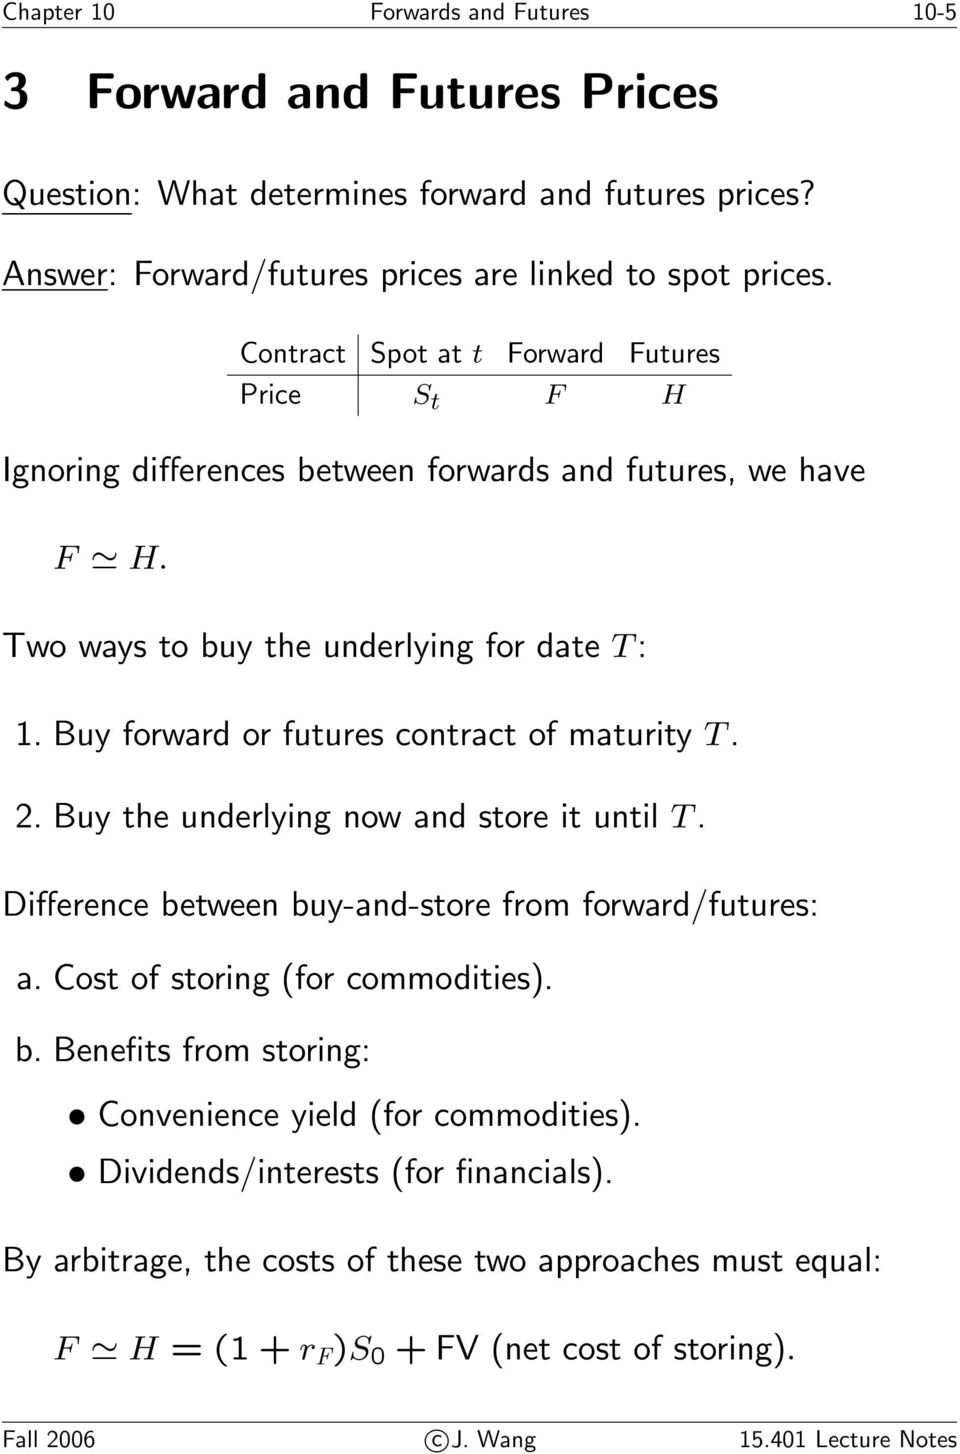 Buy forward or futures contract of maturity T. 2. Buy the underlying now and store it until T. Difference between buy-and-store from forward/futures: a. Cost of storing (for commodities). b. Benefits from storing: Convenience yield (for commodities).